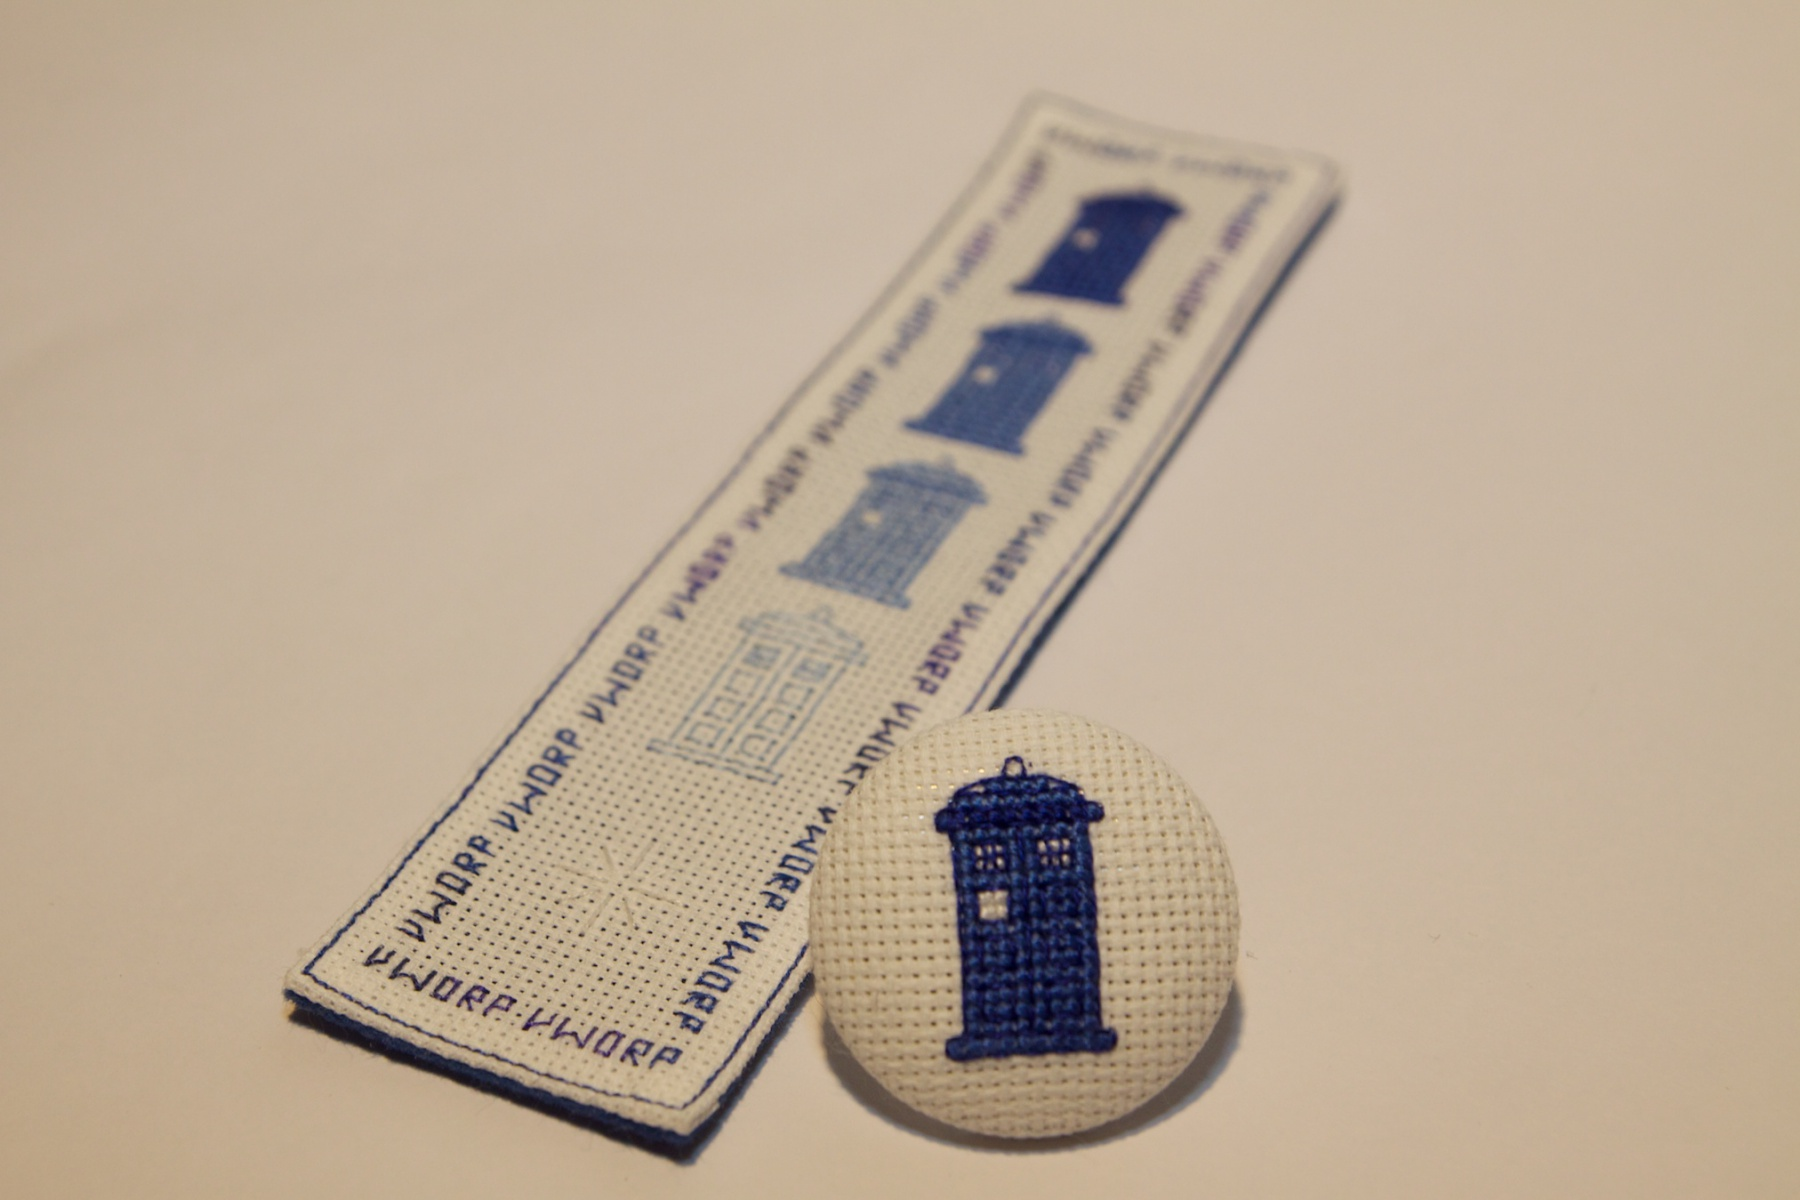 Doctor Who cross stitched bookmark and pin, from Sarah Overall.